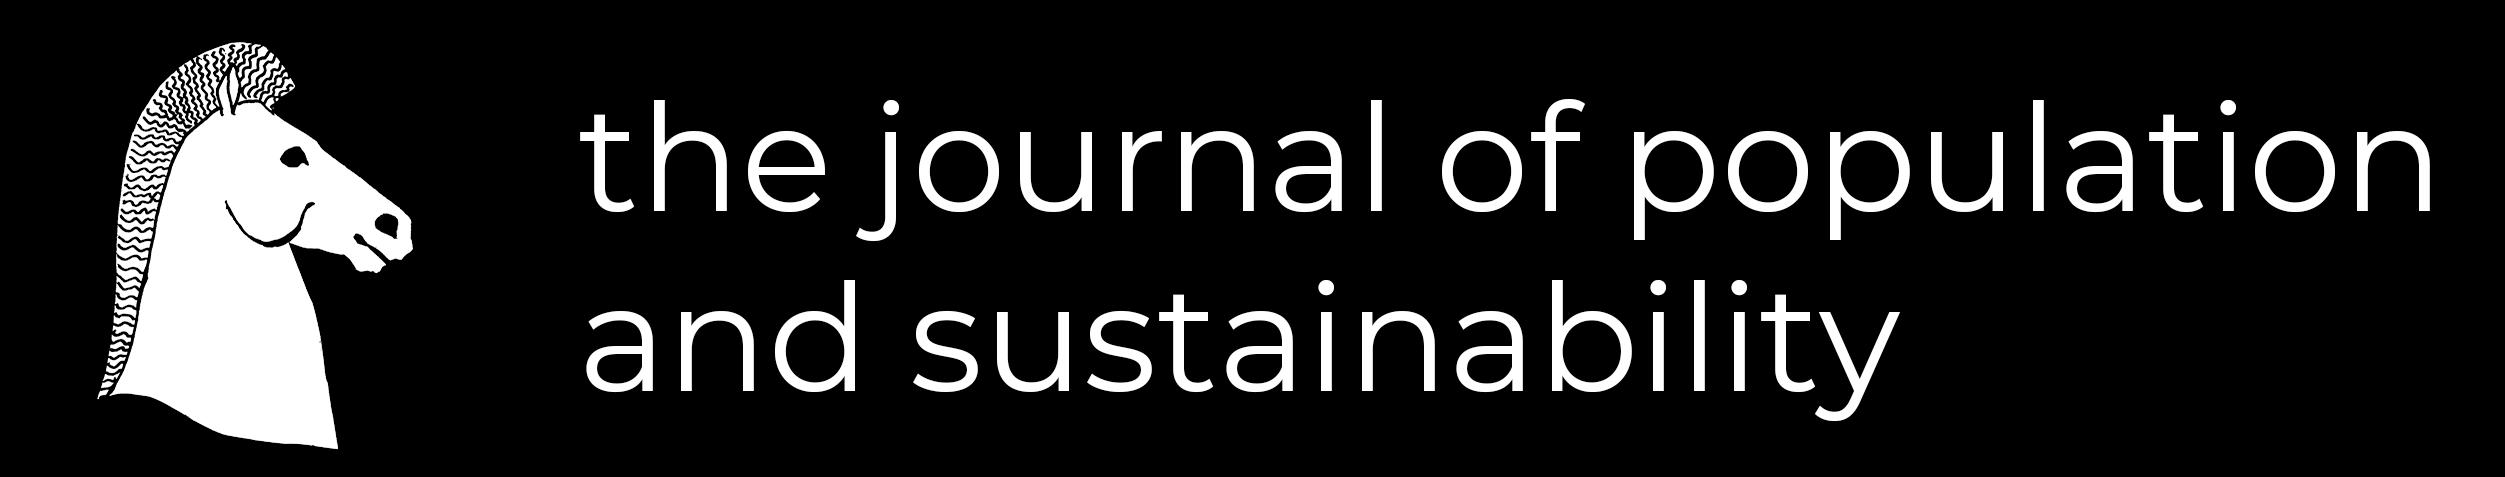 the journal of population and sustainability